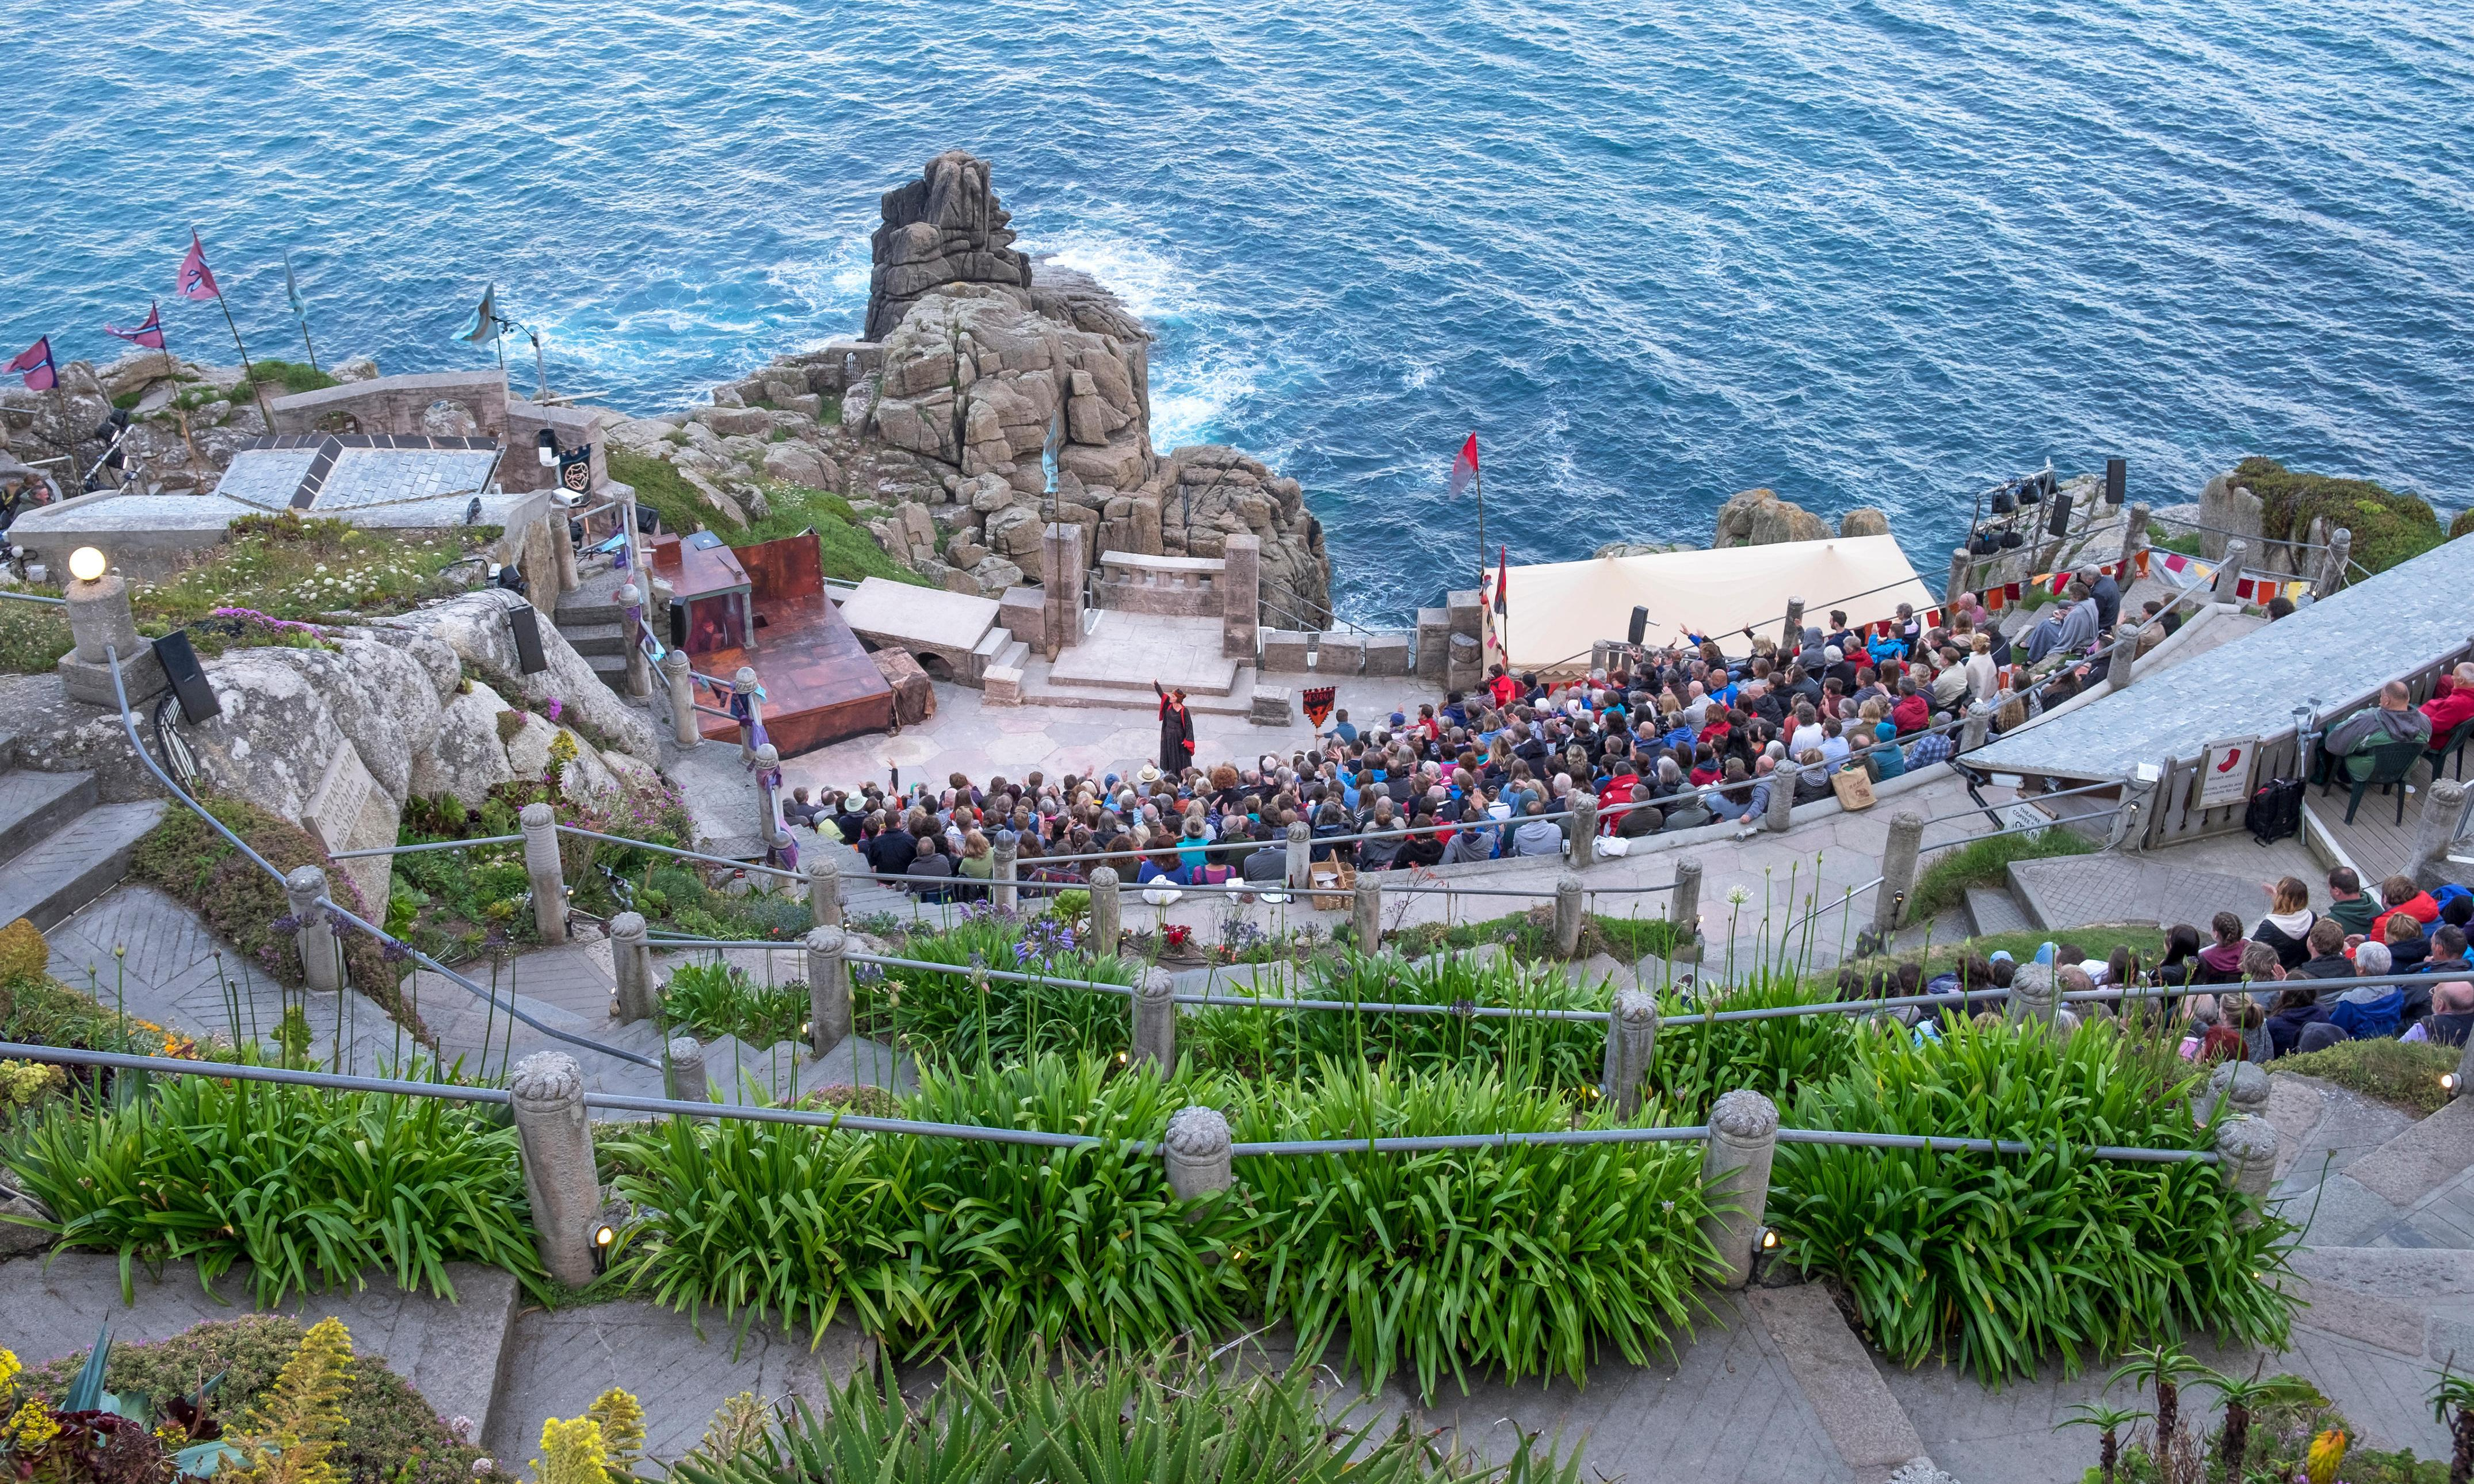 10 great UK open-air theatres you can visit on public transport